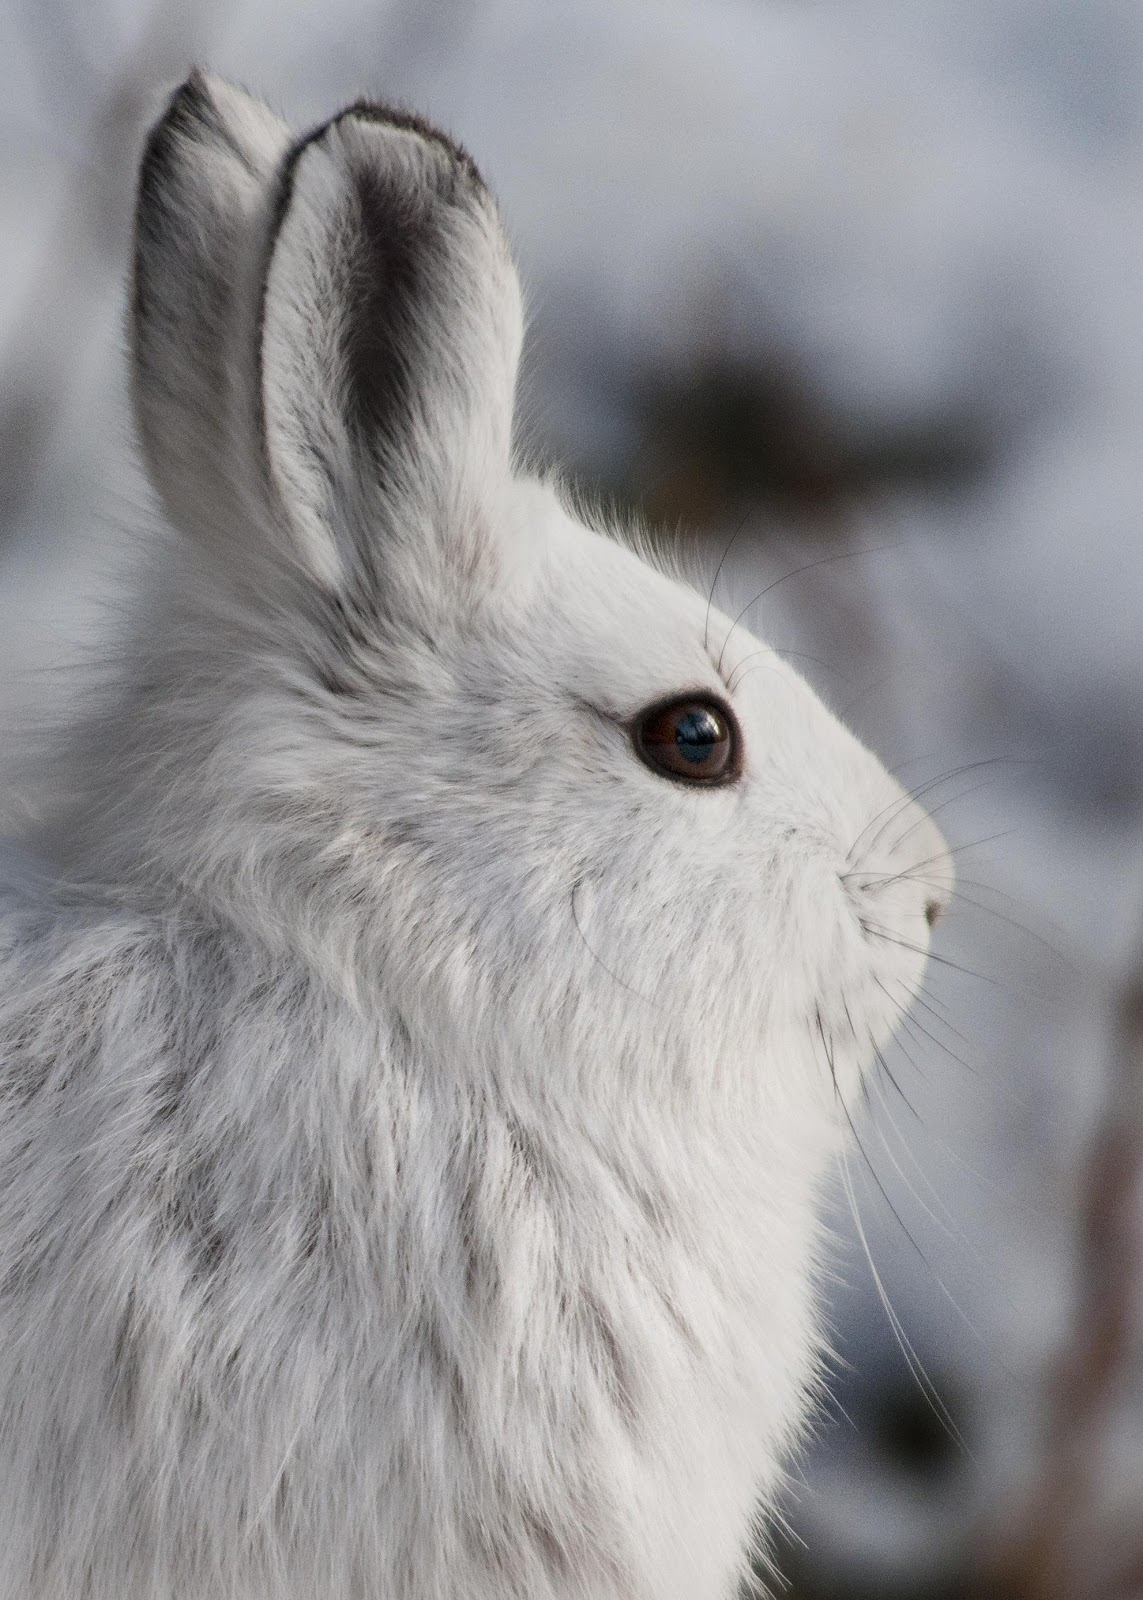 White Snowshoe Hare    By Denali National Park and Preserve - Snowshoe HareUploaded by AlbertHerring, Public Domain,  https://commons.wikimedia.org/w/index.php?curid=29613781